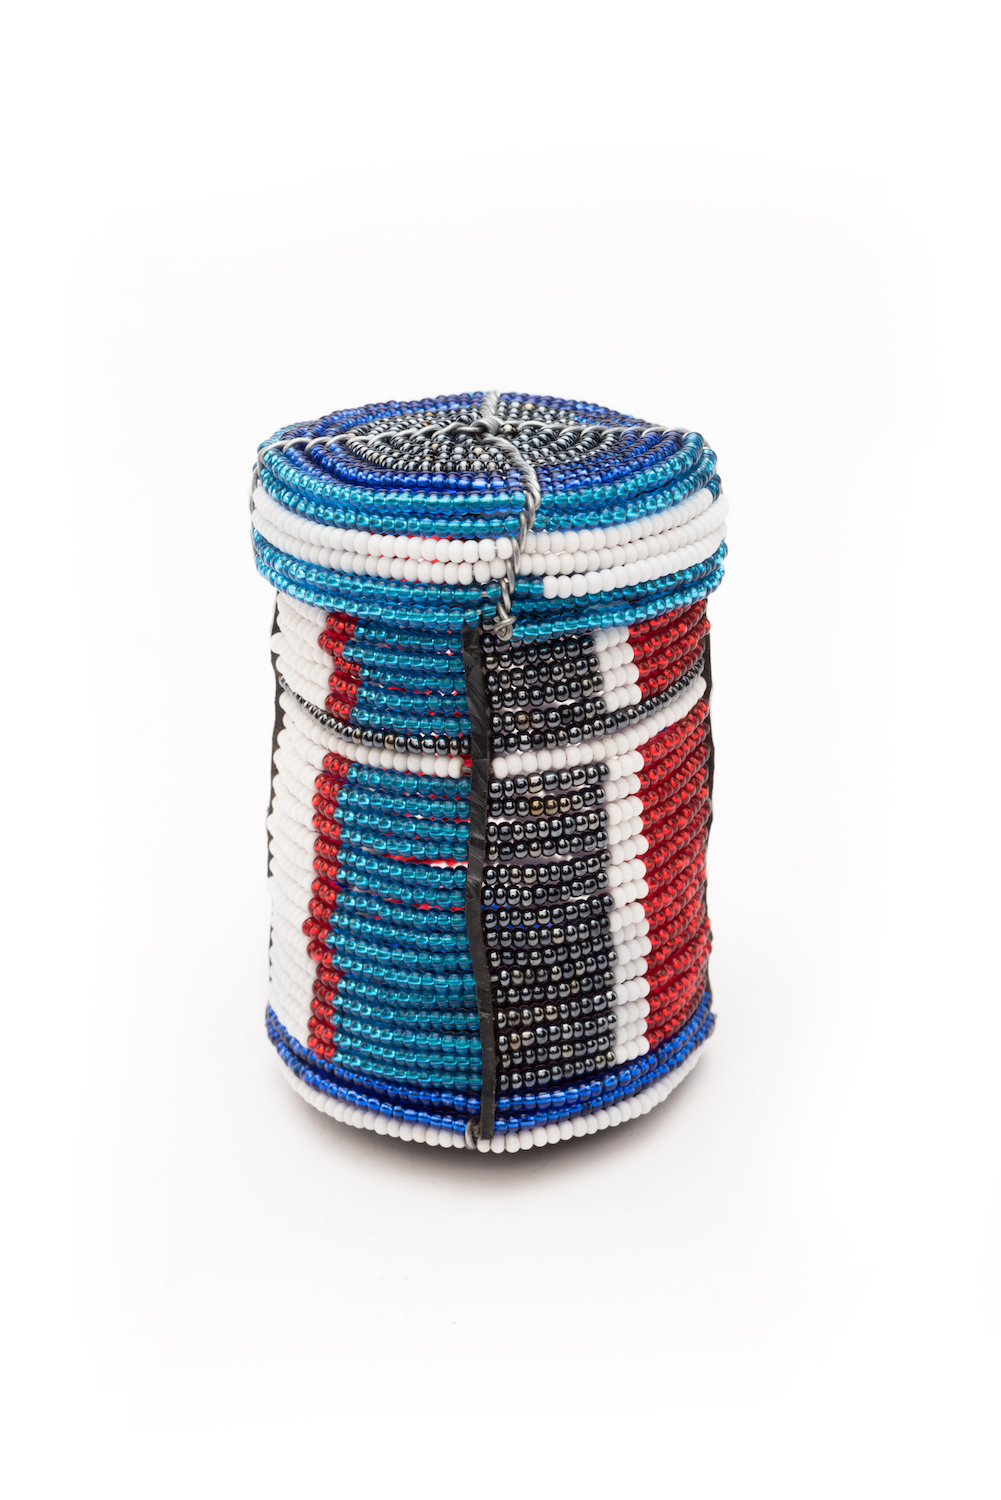 Beaded box (tall)